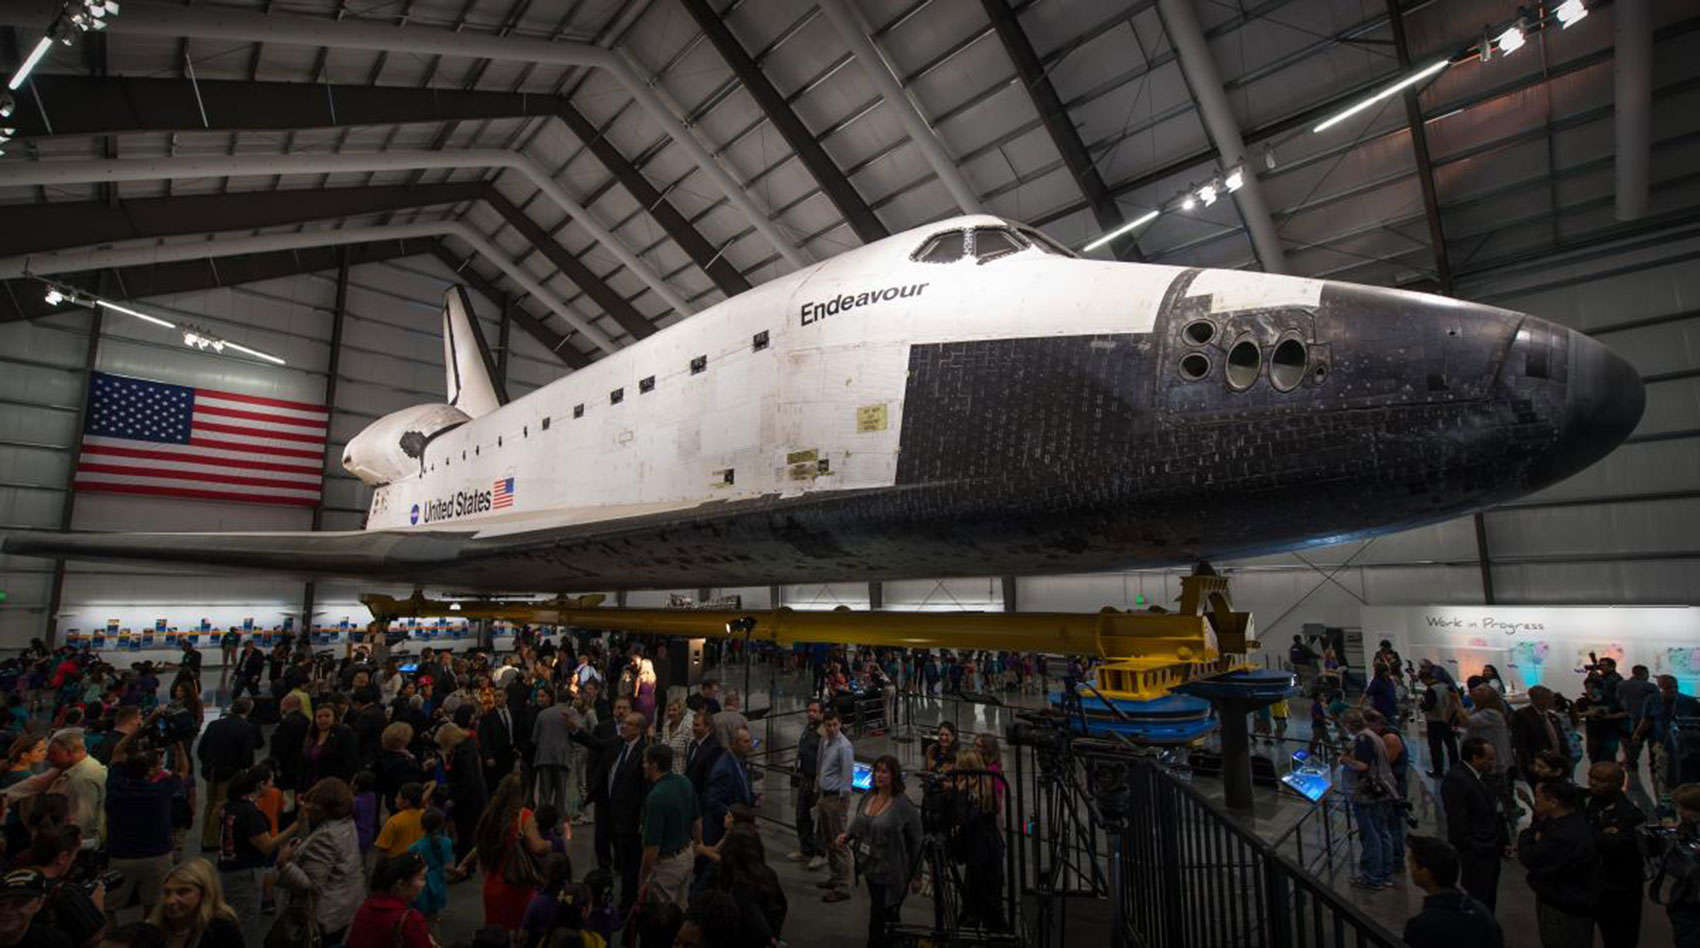 NASA recently pulled the water tanks from the space shuttle Endeavor.